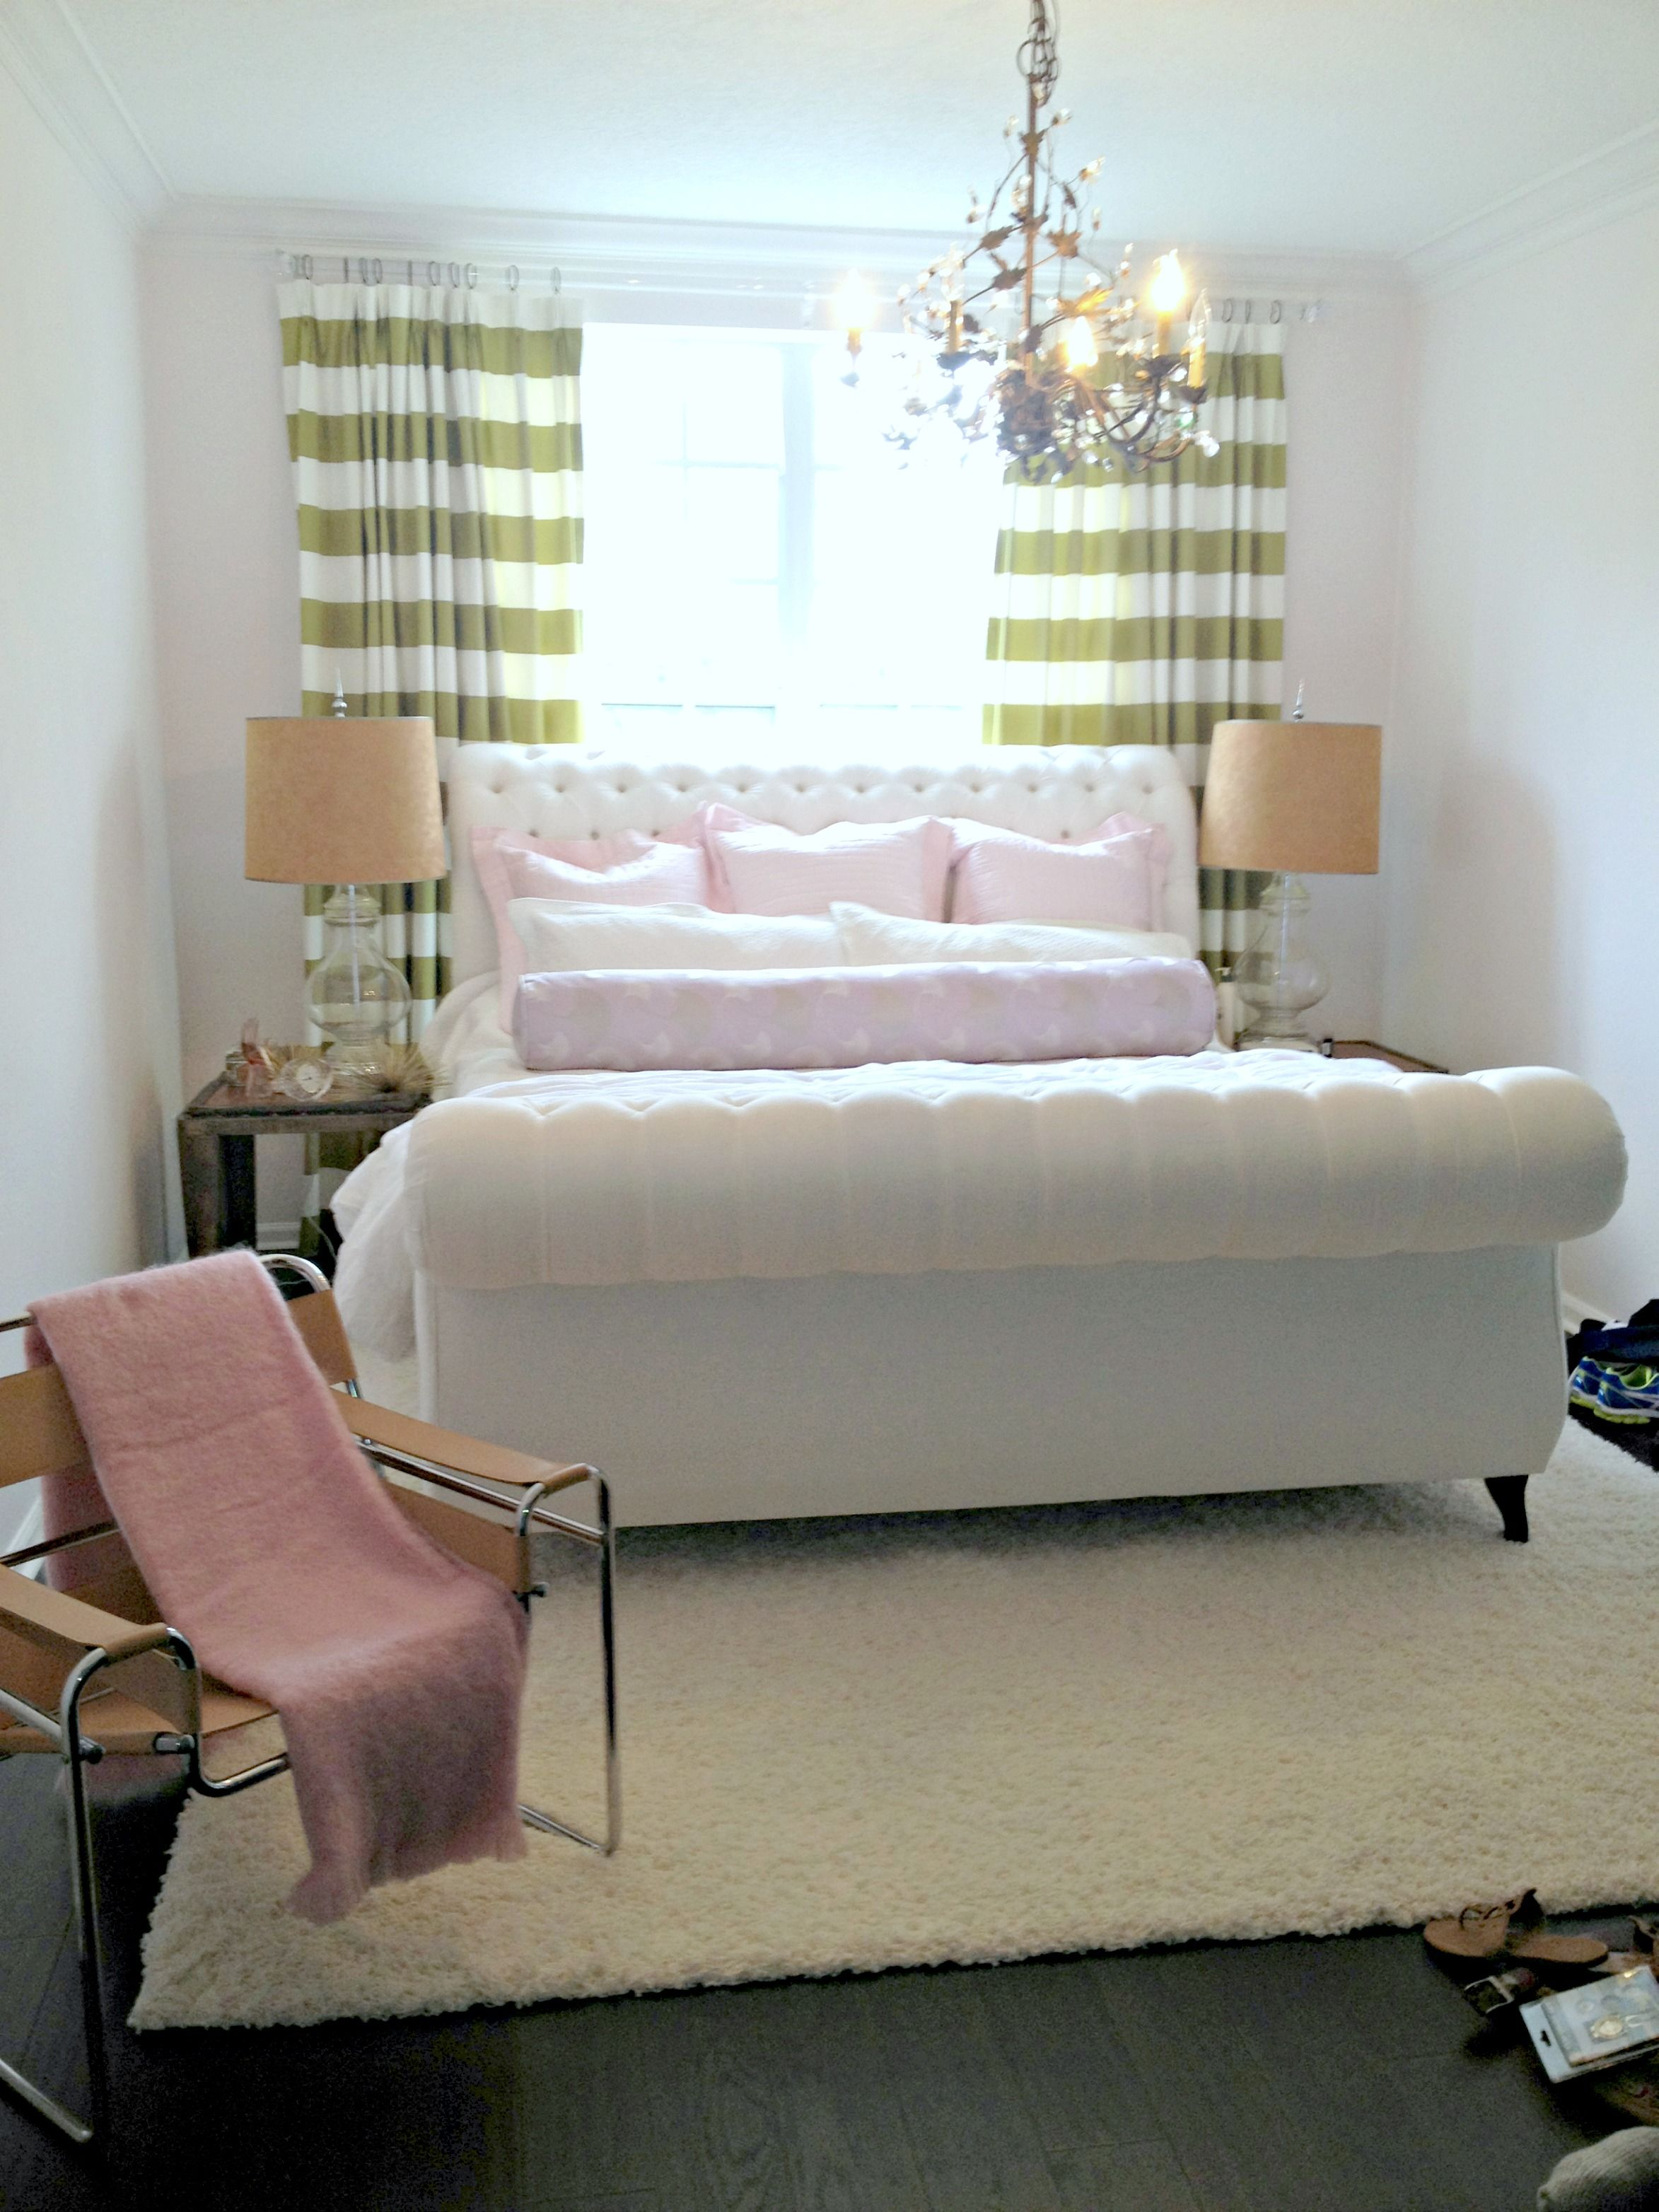 Bedroom Redo Chartreuse Curtains White Tufted Sleigh Bed Wassily Chair